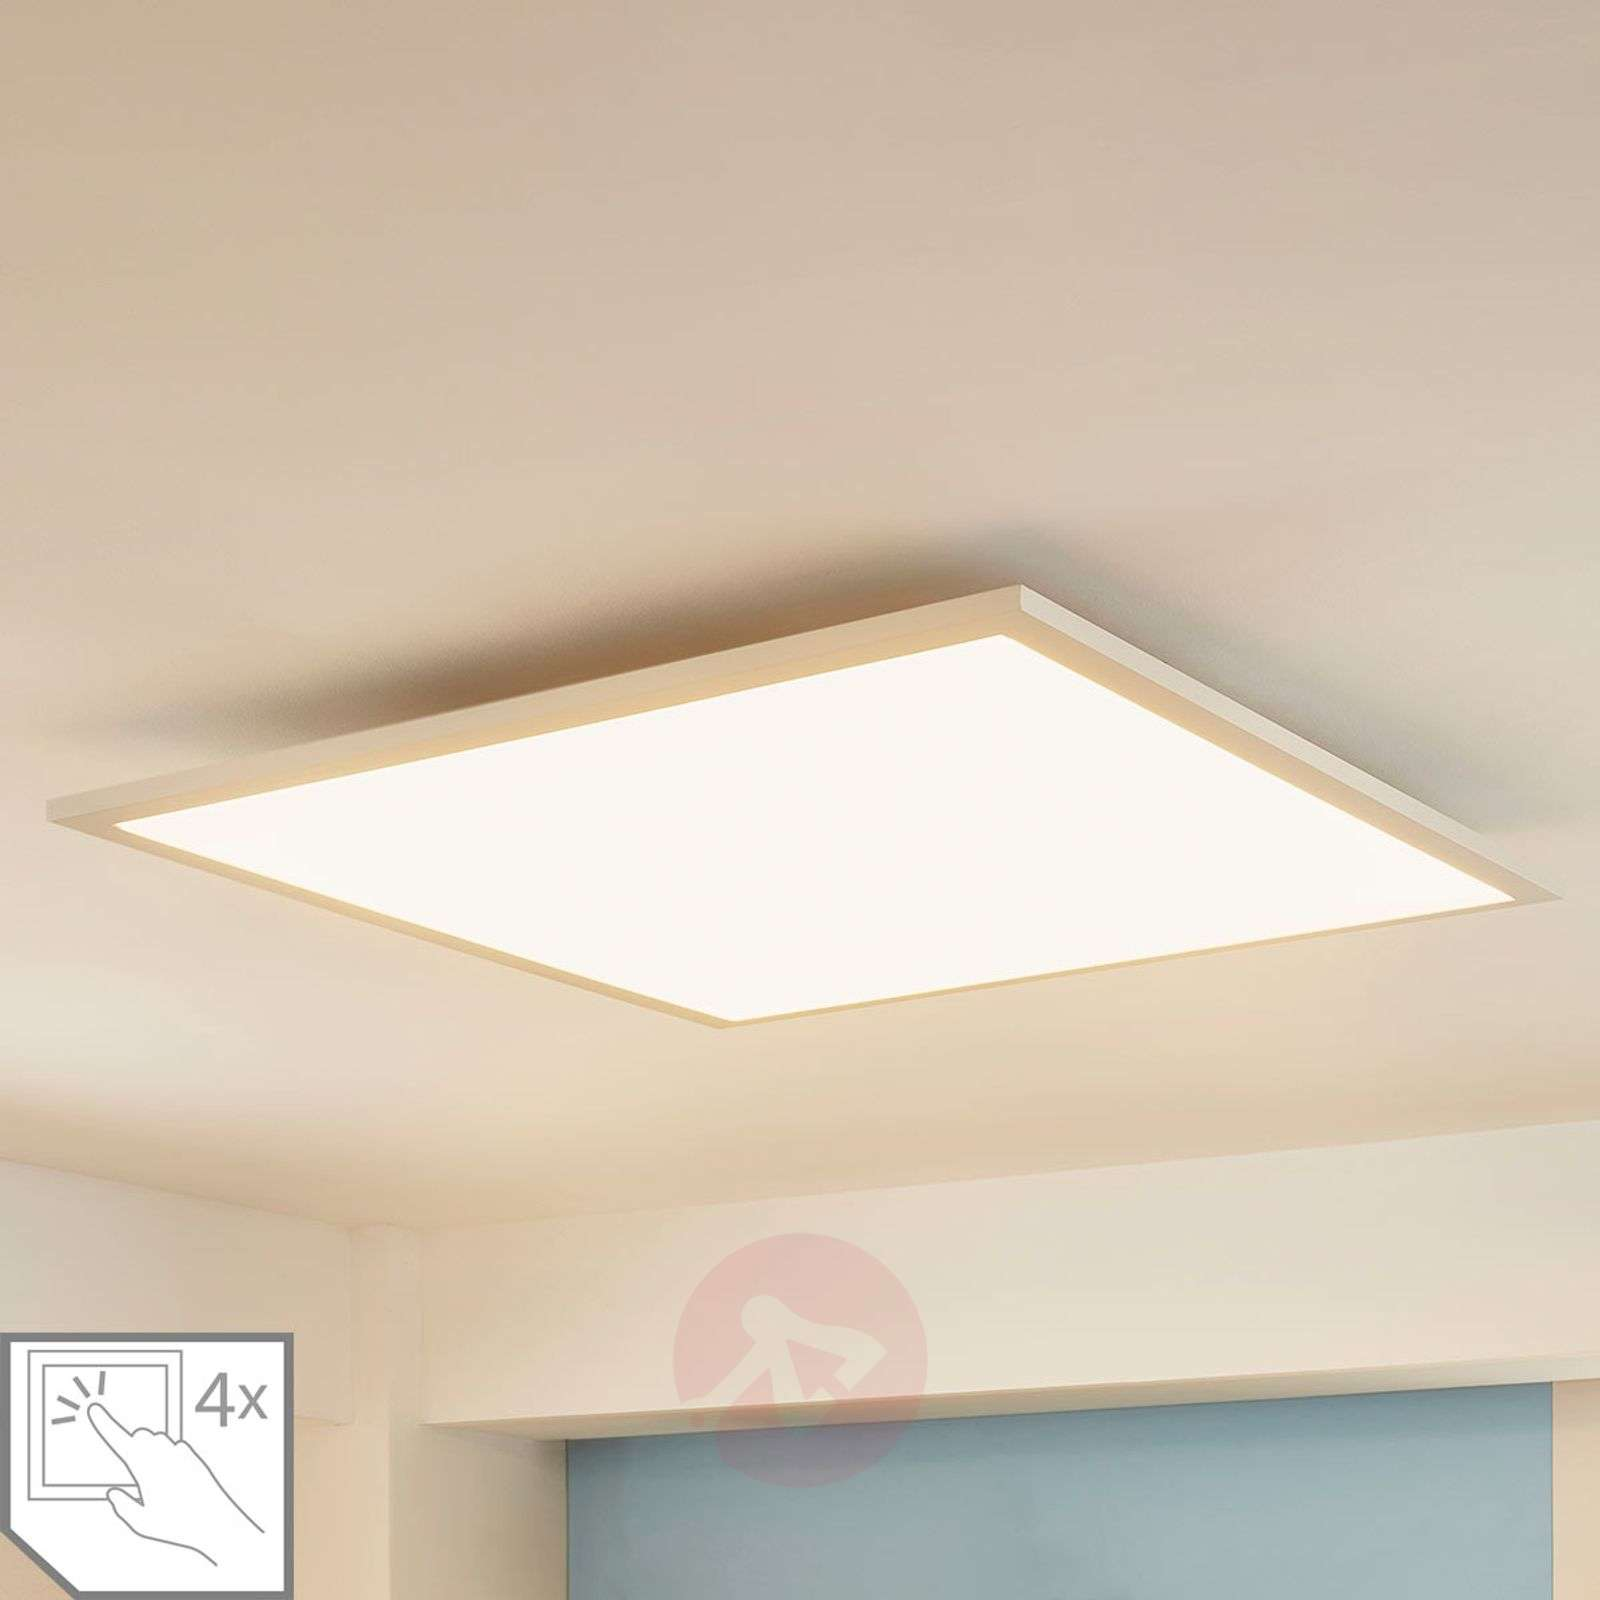 Square LED panel Enja, 62 x 62 cm-9621532-02